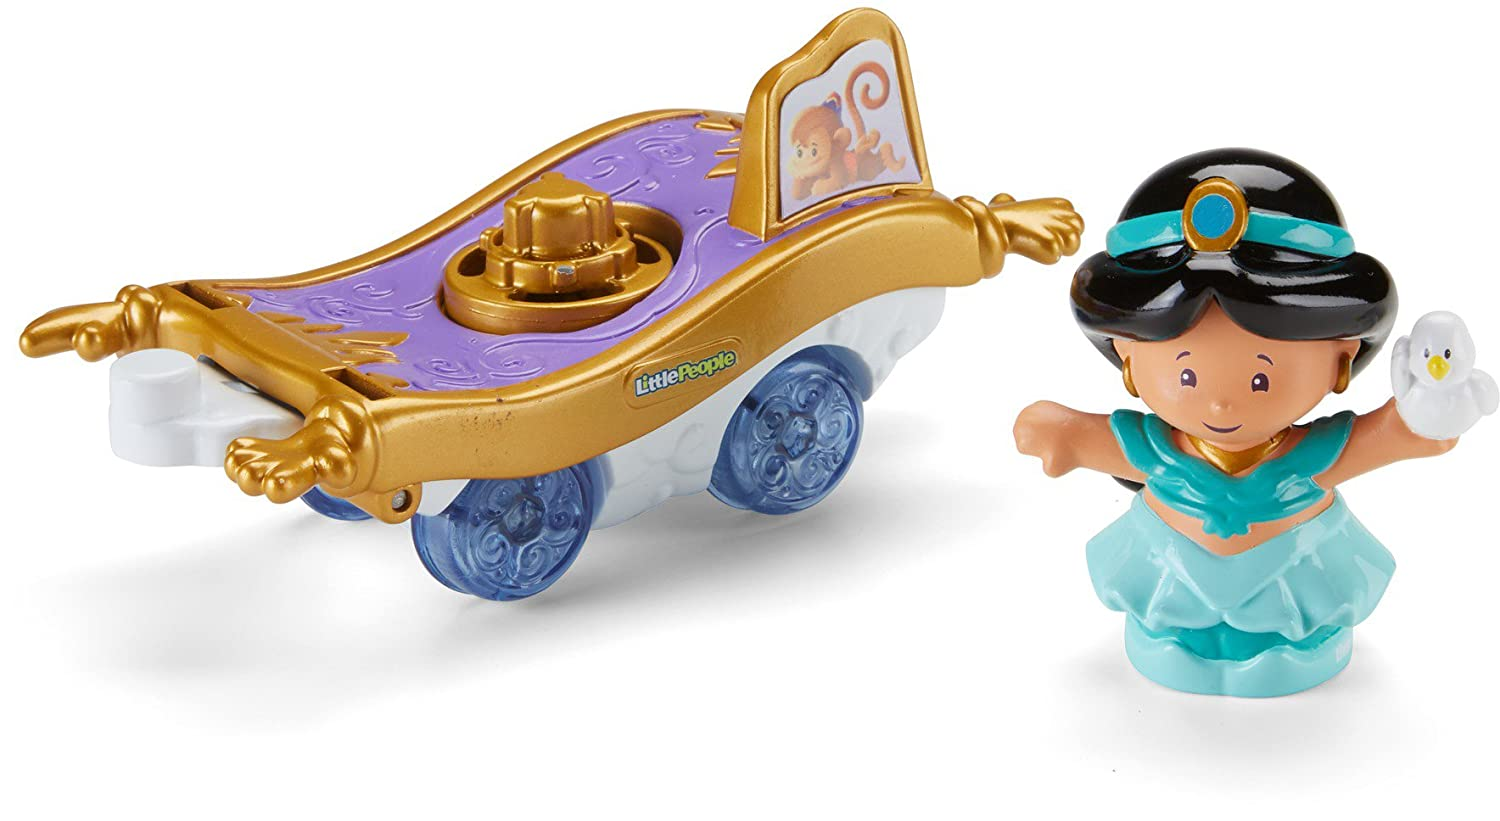 Amazon.com: Fisher-Price Little People Disney Princess Parade Jasmine & Abus Float: Toys & Games